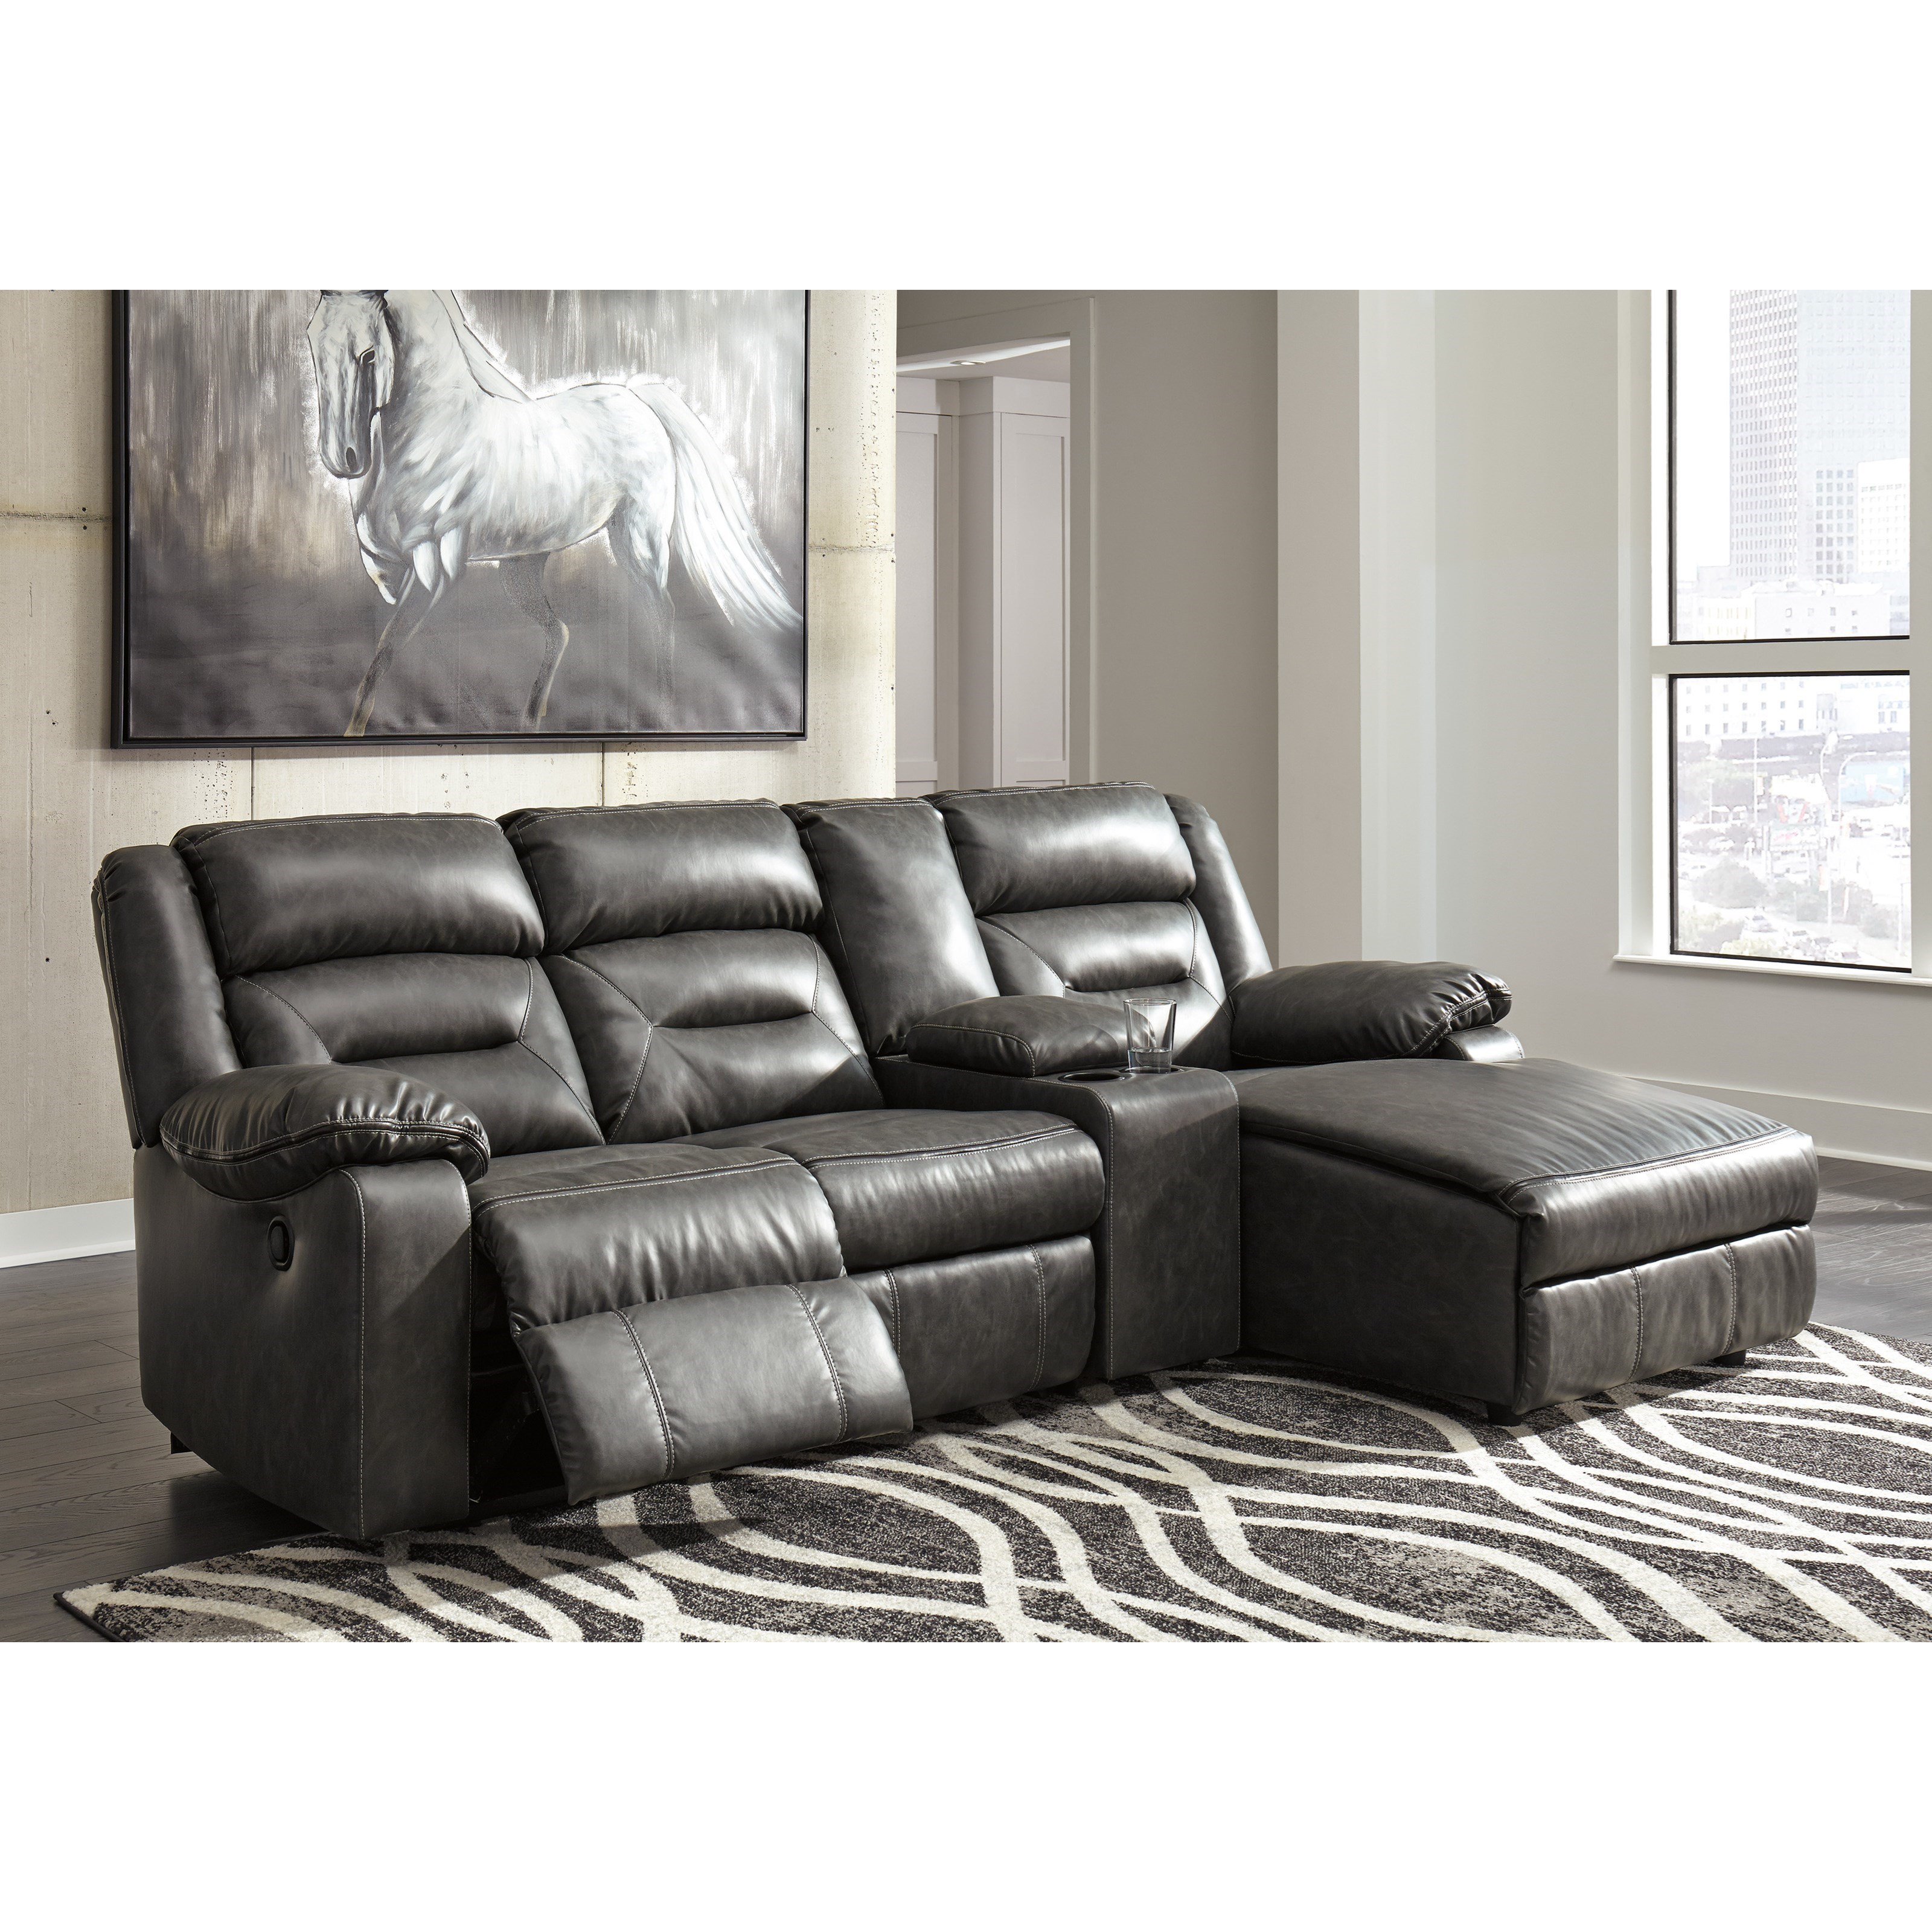 Ashley Sofas And Sectionals: Signature Design By Ashley Coahoma 4-Piece Sectional With